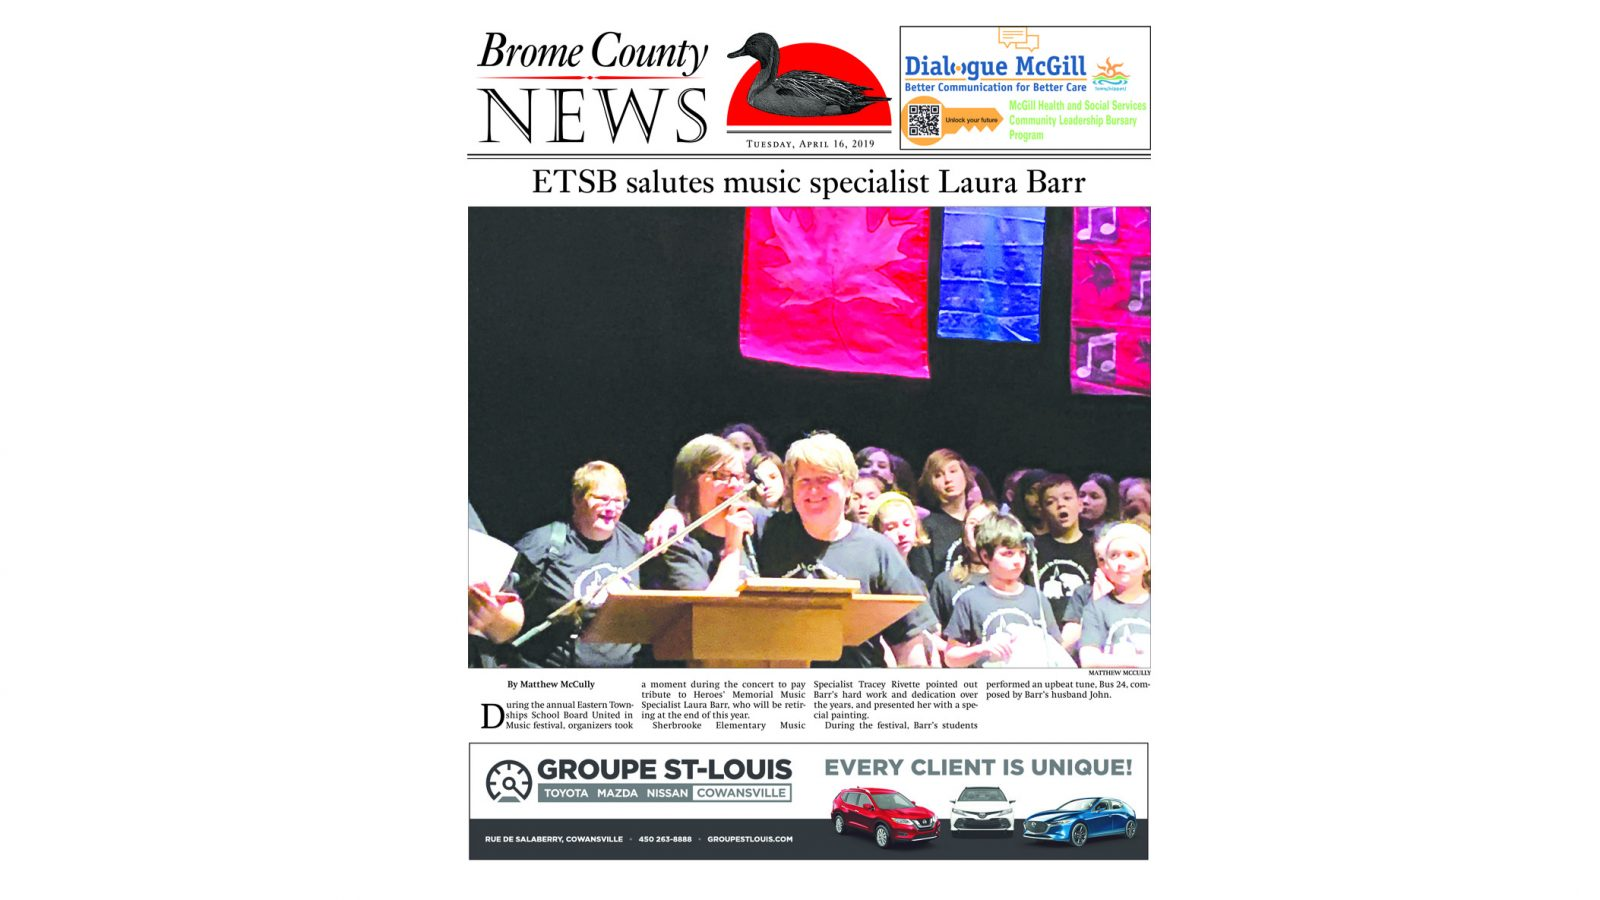 Brome County News: April 16, 2019 edition